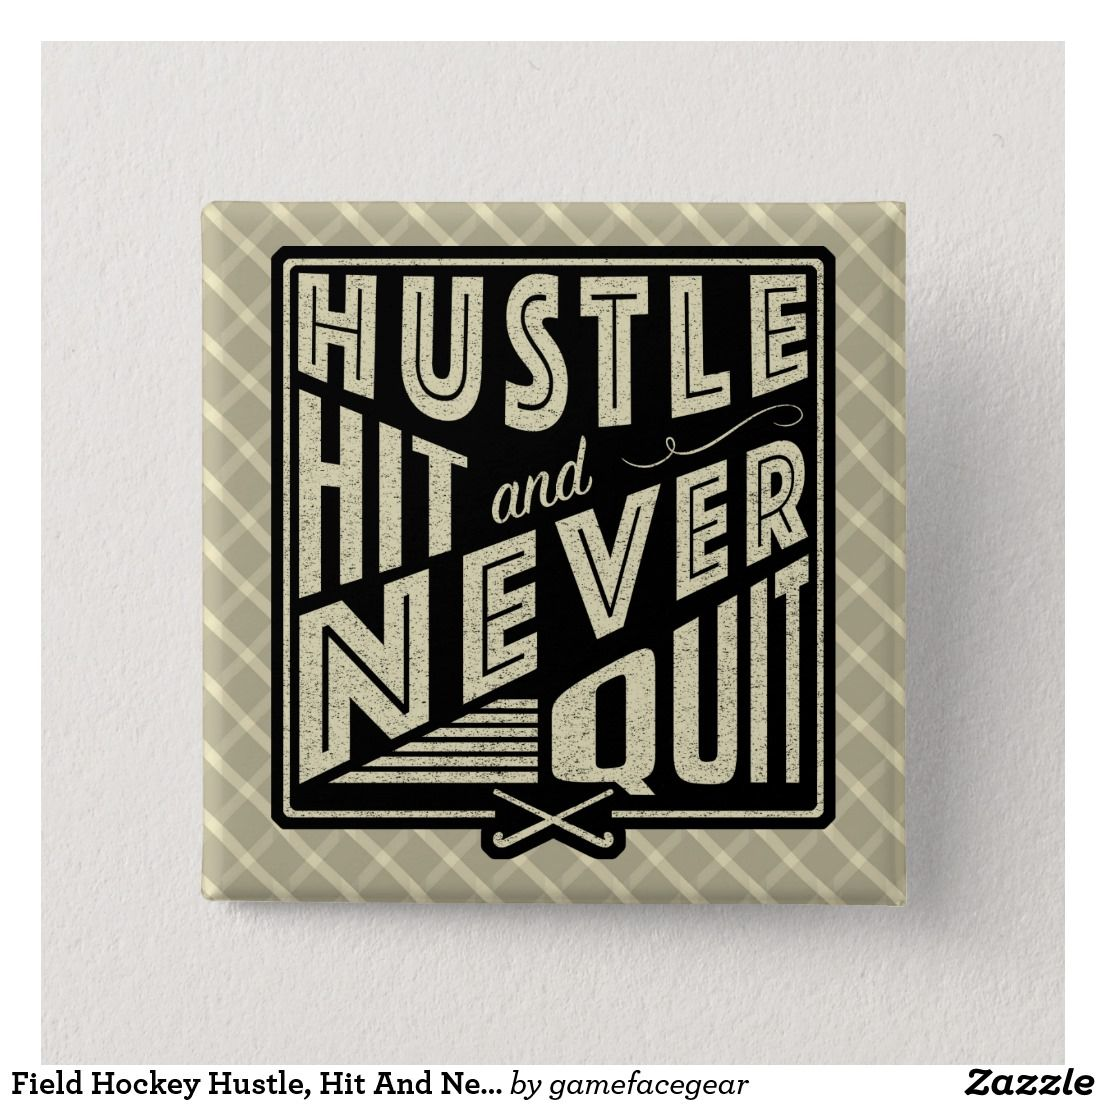 Field Hockey Hustle, Hit And Never Quit Pin